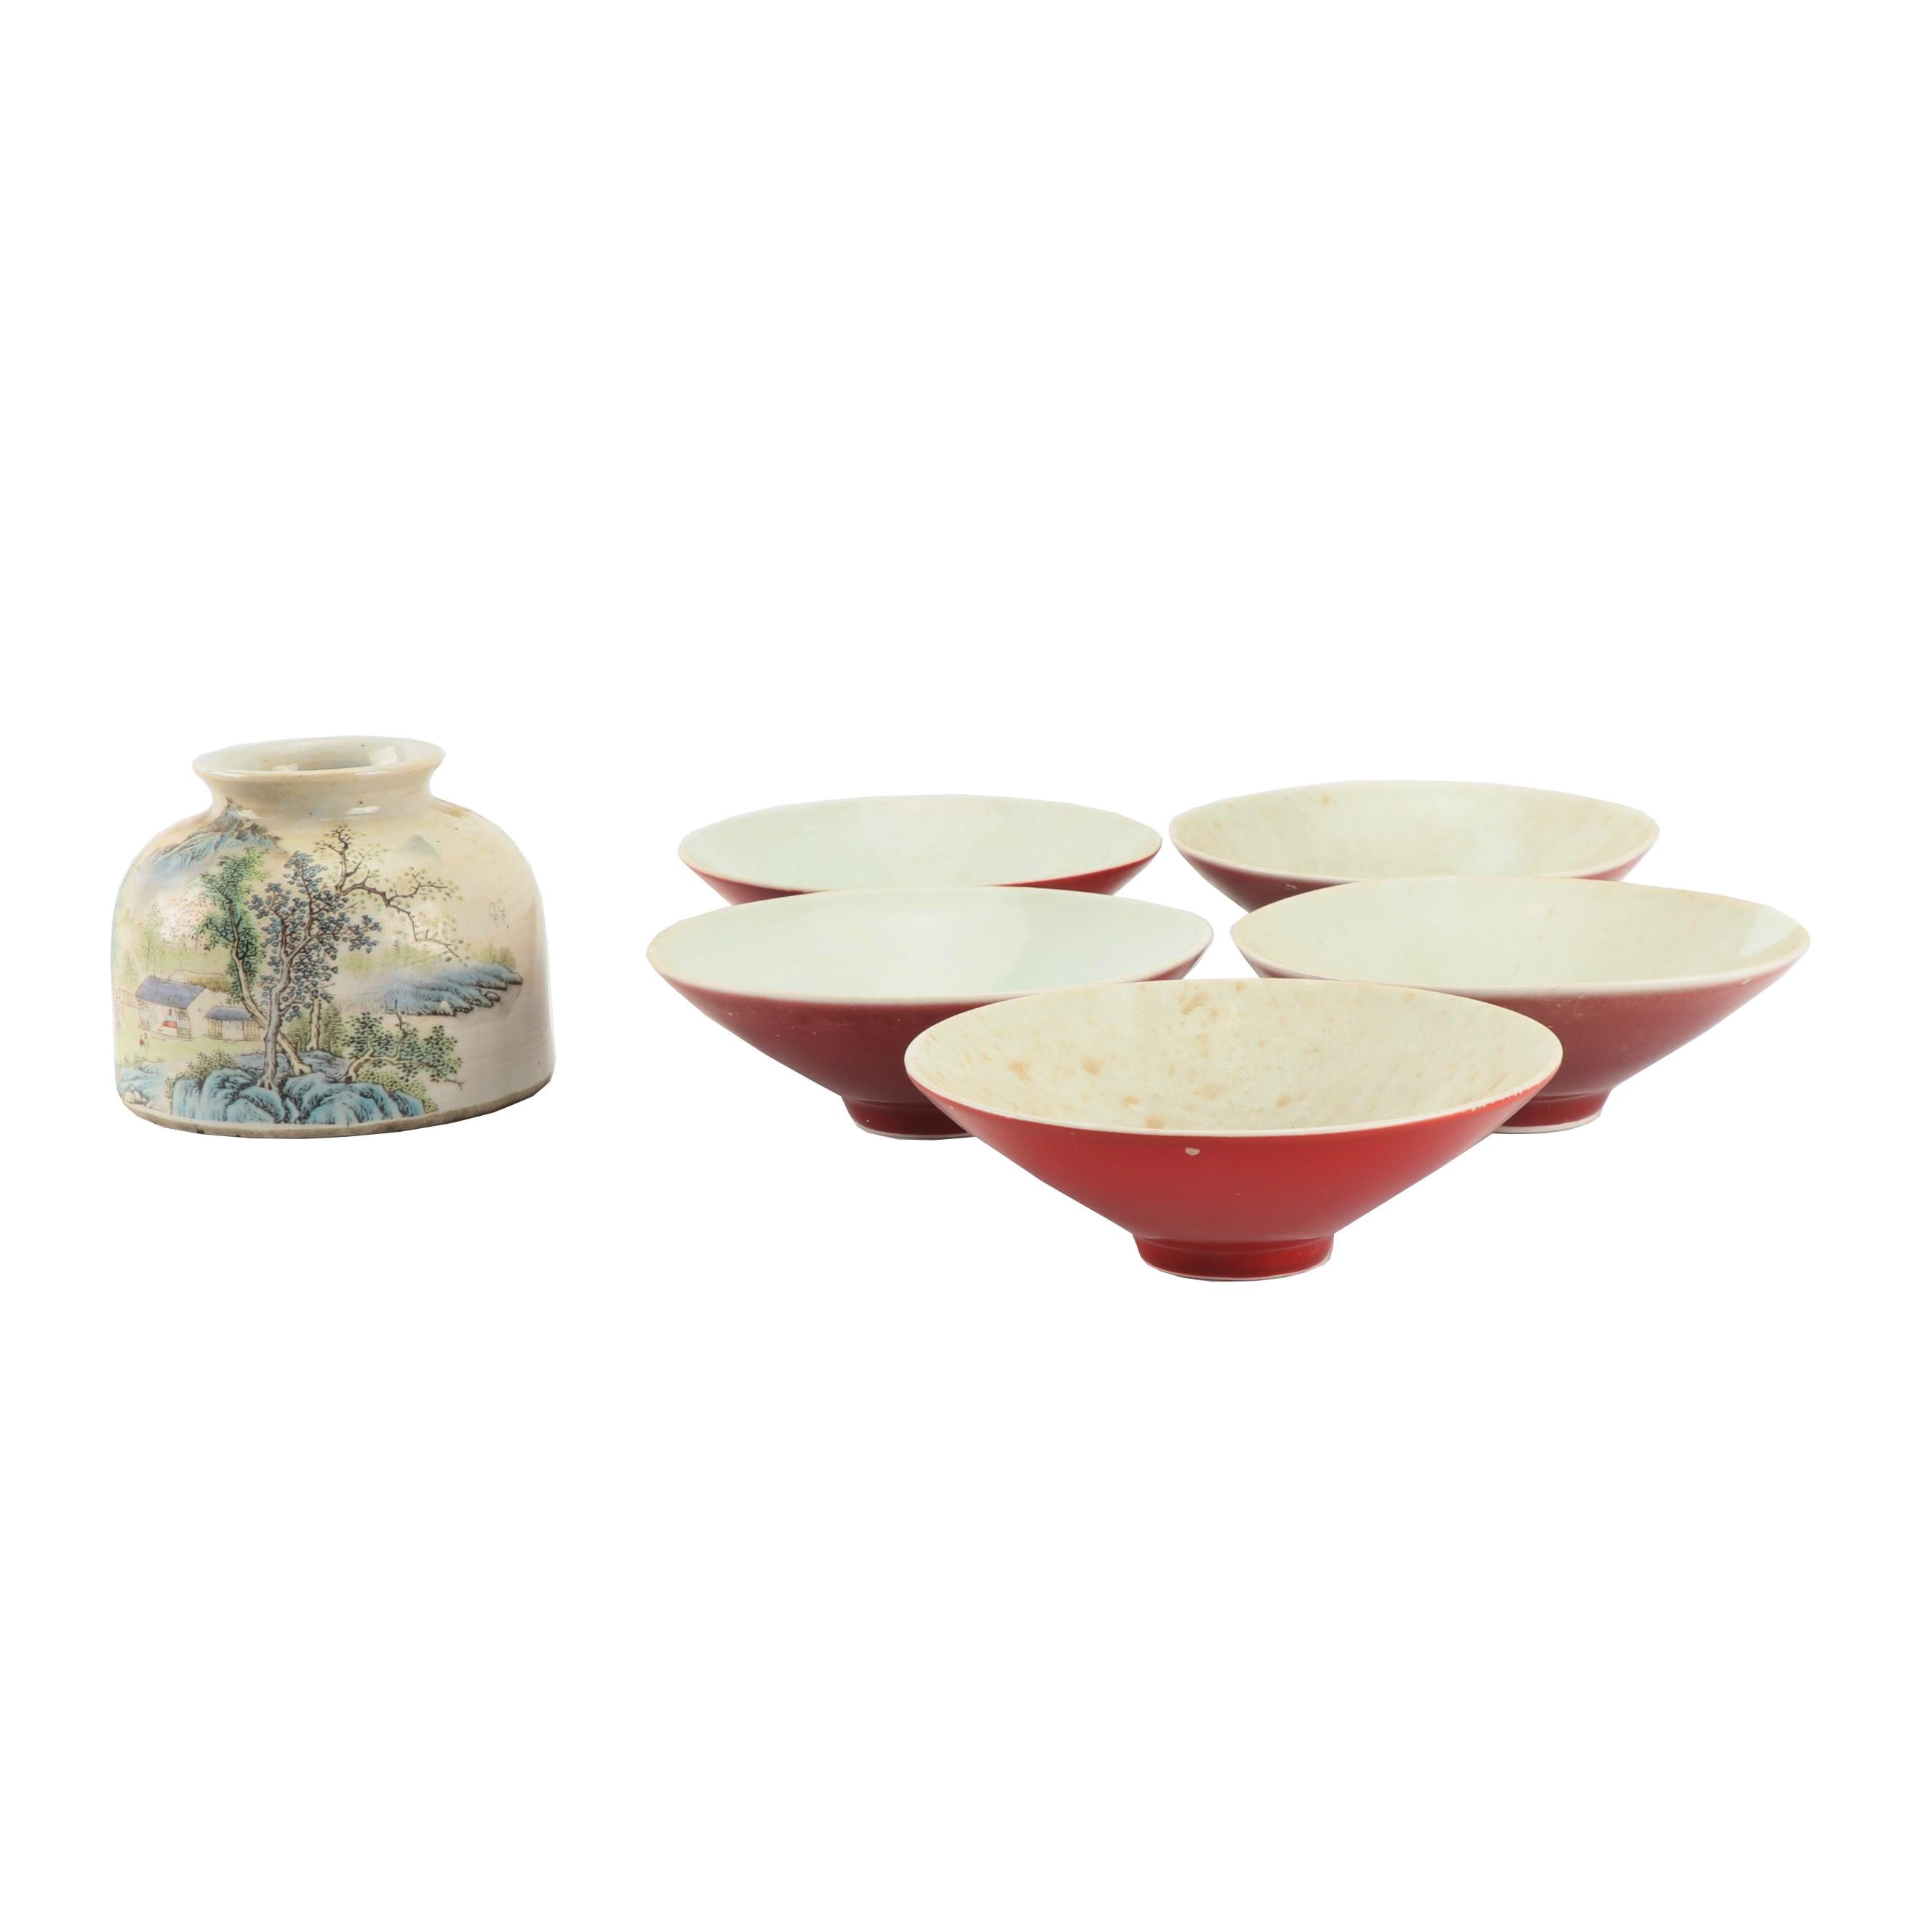 Chinese Republic Period Porcelain Jar and Red Glazed Bowls